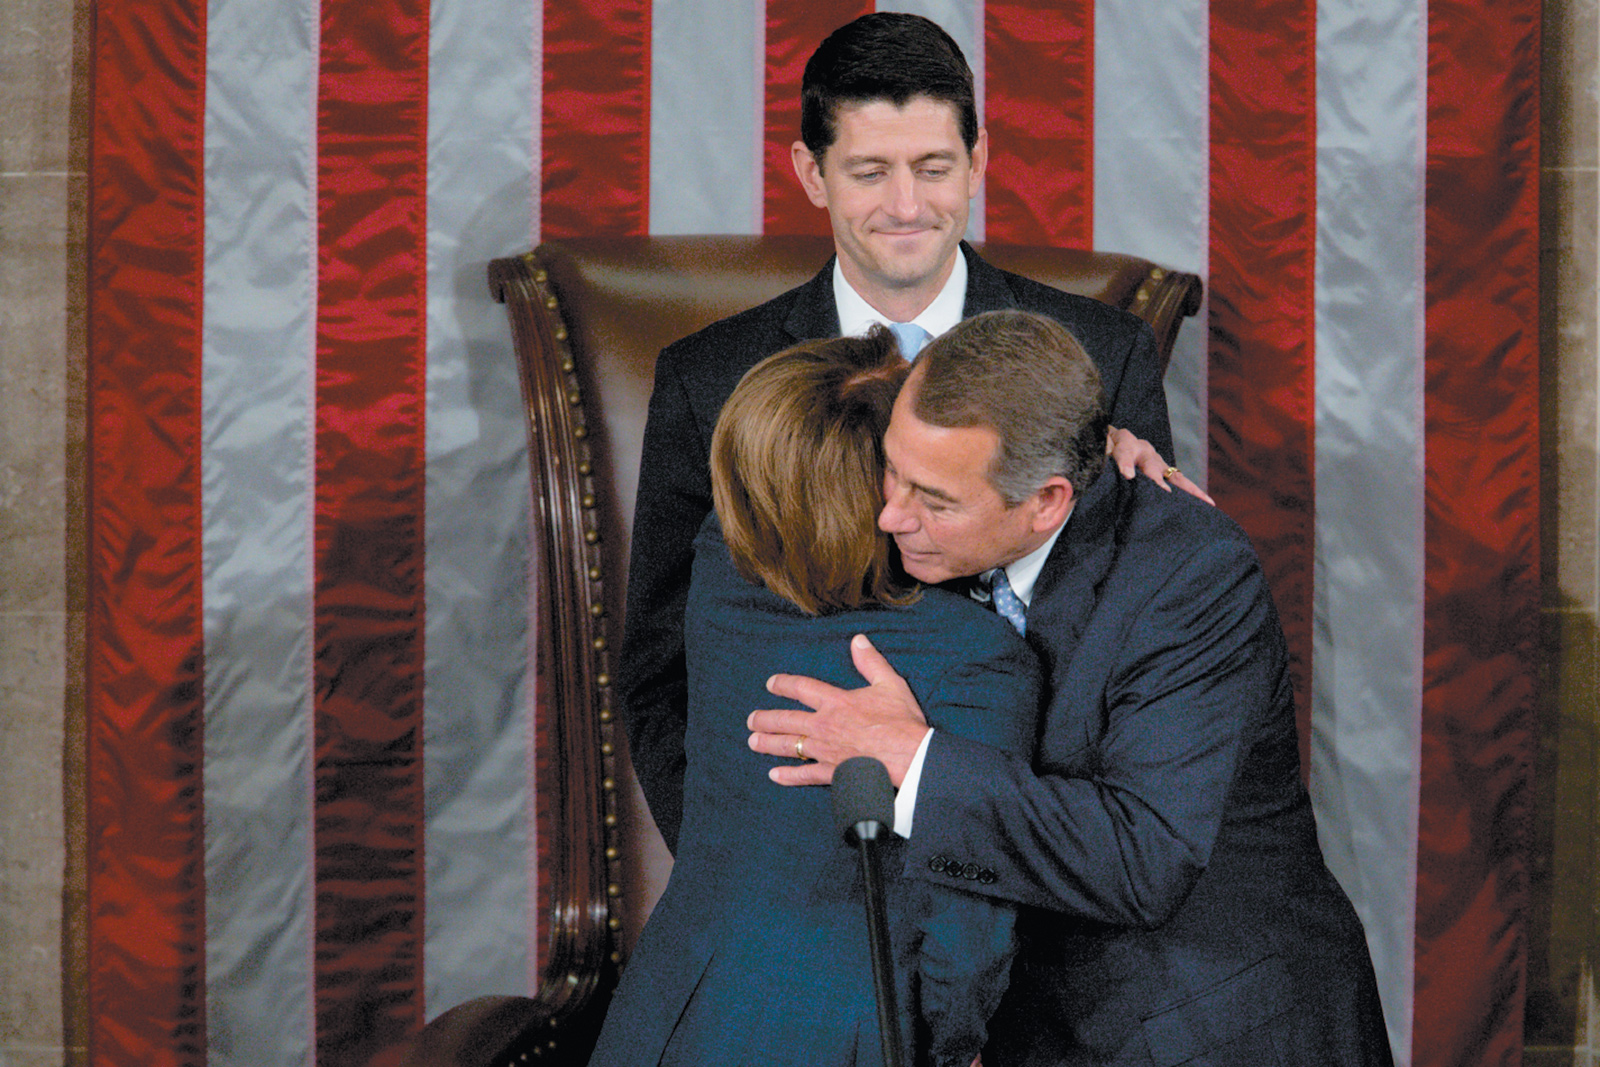 Republican Speaker of the House John Boehner with Democrat Nancy Pelosi, the House minority leader, as he passed the speakership to fellow Republican Paul Ryan, Washington, D.C., October 2015